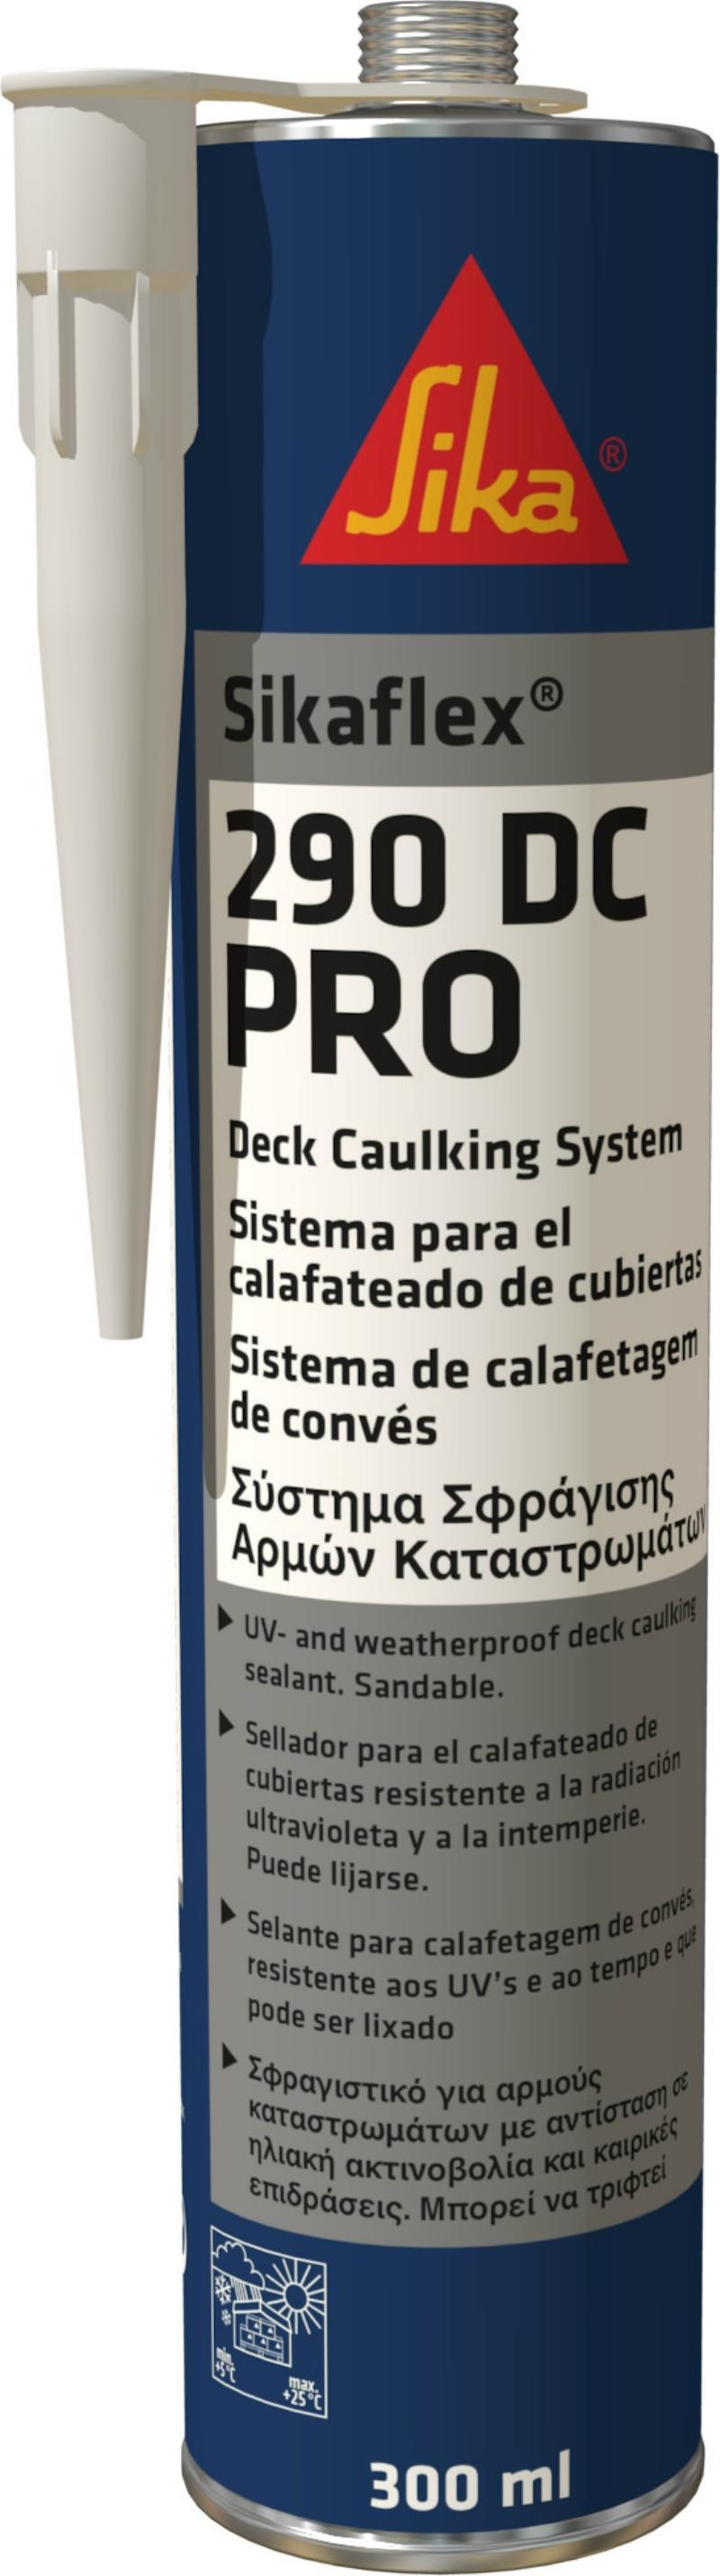 Sikaflex Deck Caulking Sealant When You Are Looking Into Adding A Your Swimming Pool Then There Few Things That Will Need To C